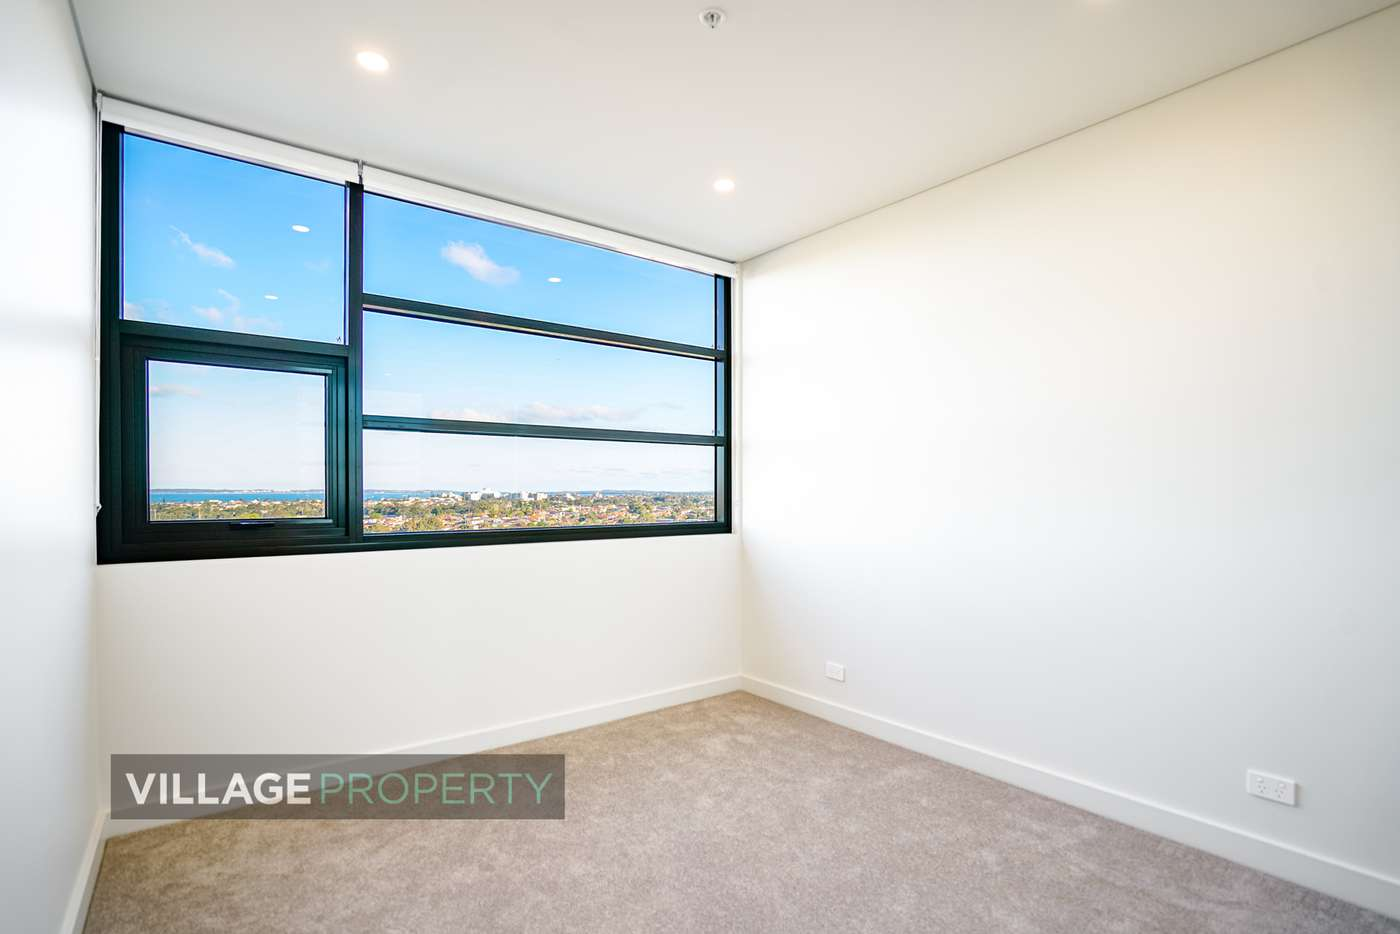 Seventh view of Homely apartment listing, 163/213 Princes Highway, Arncliffe NSW 2205